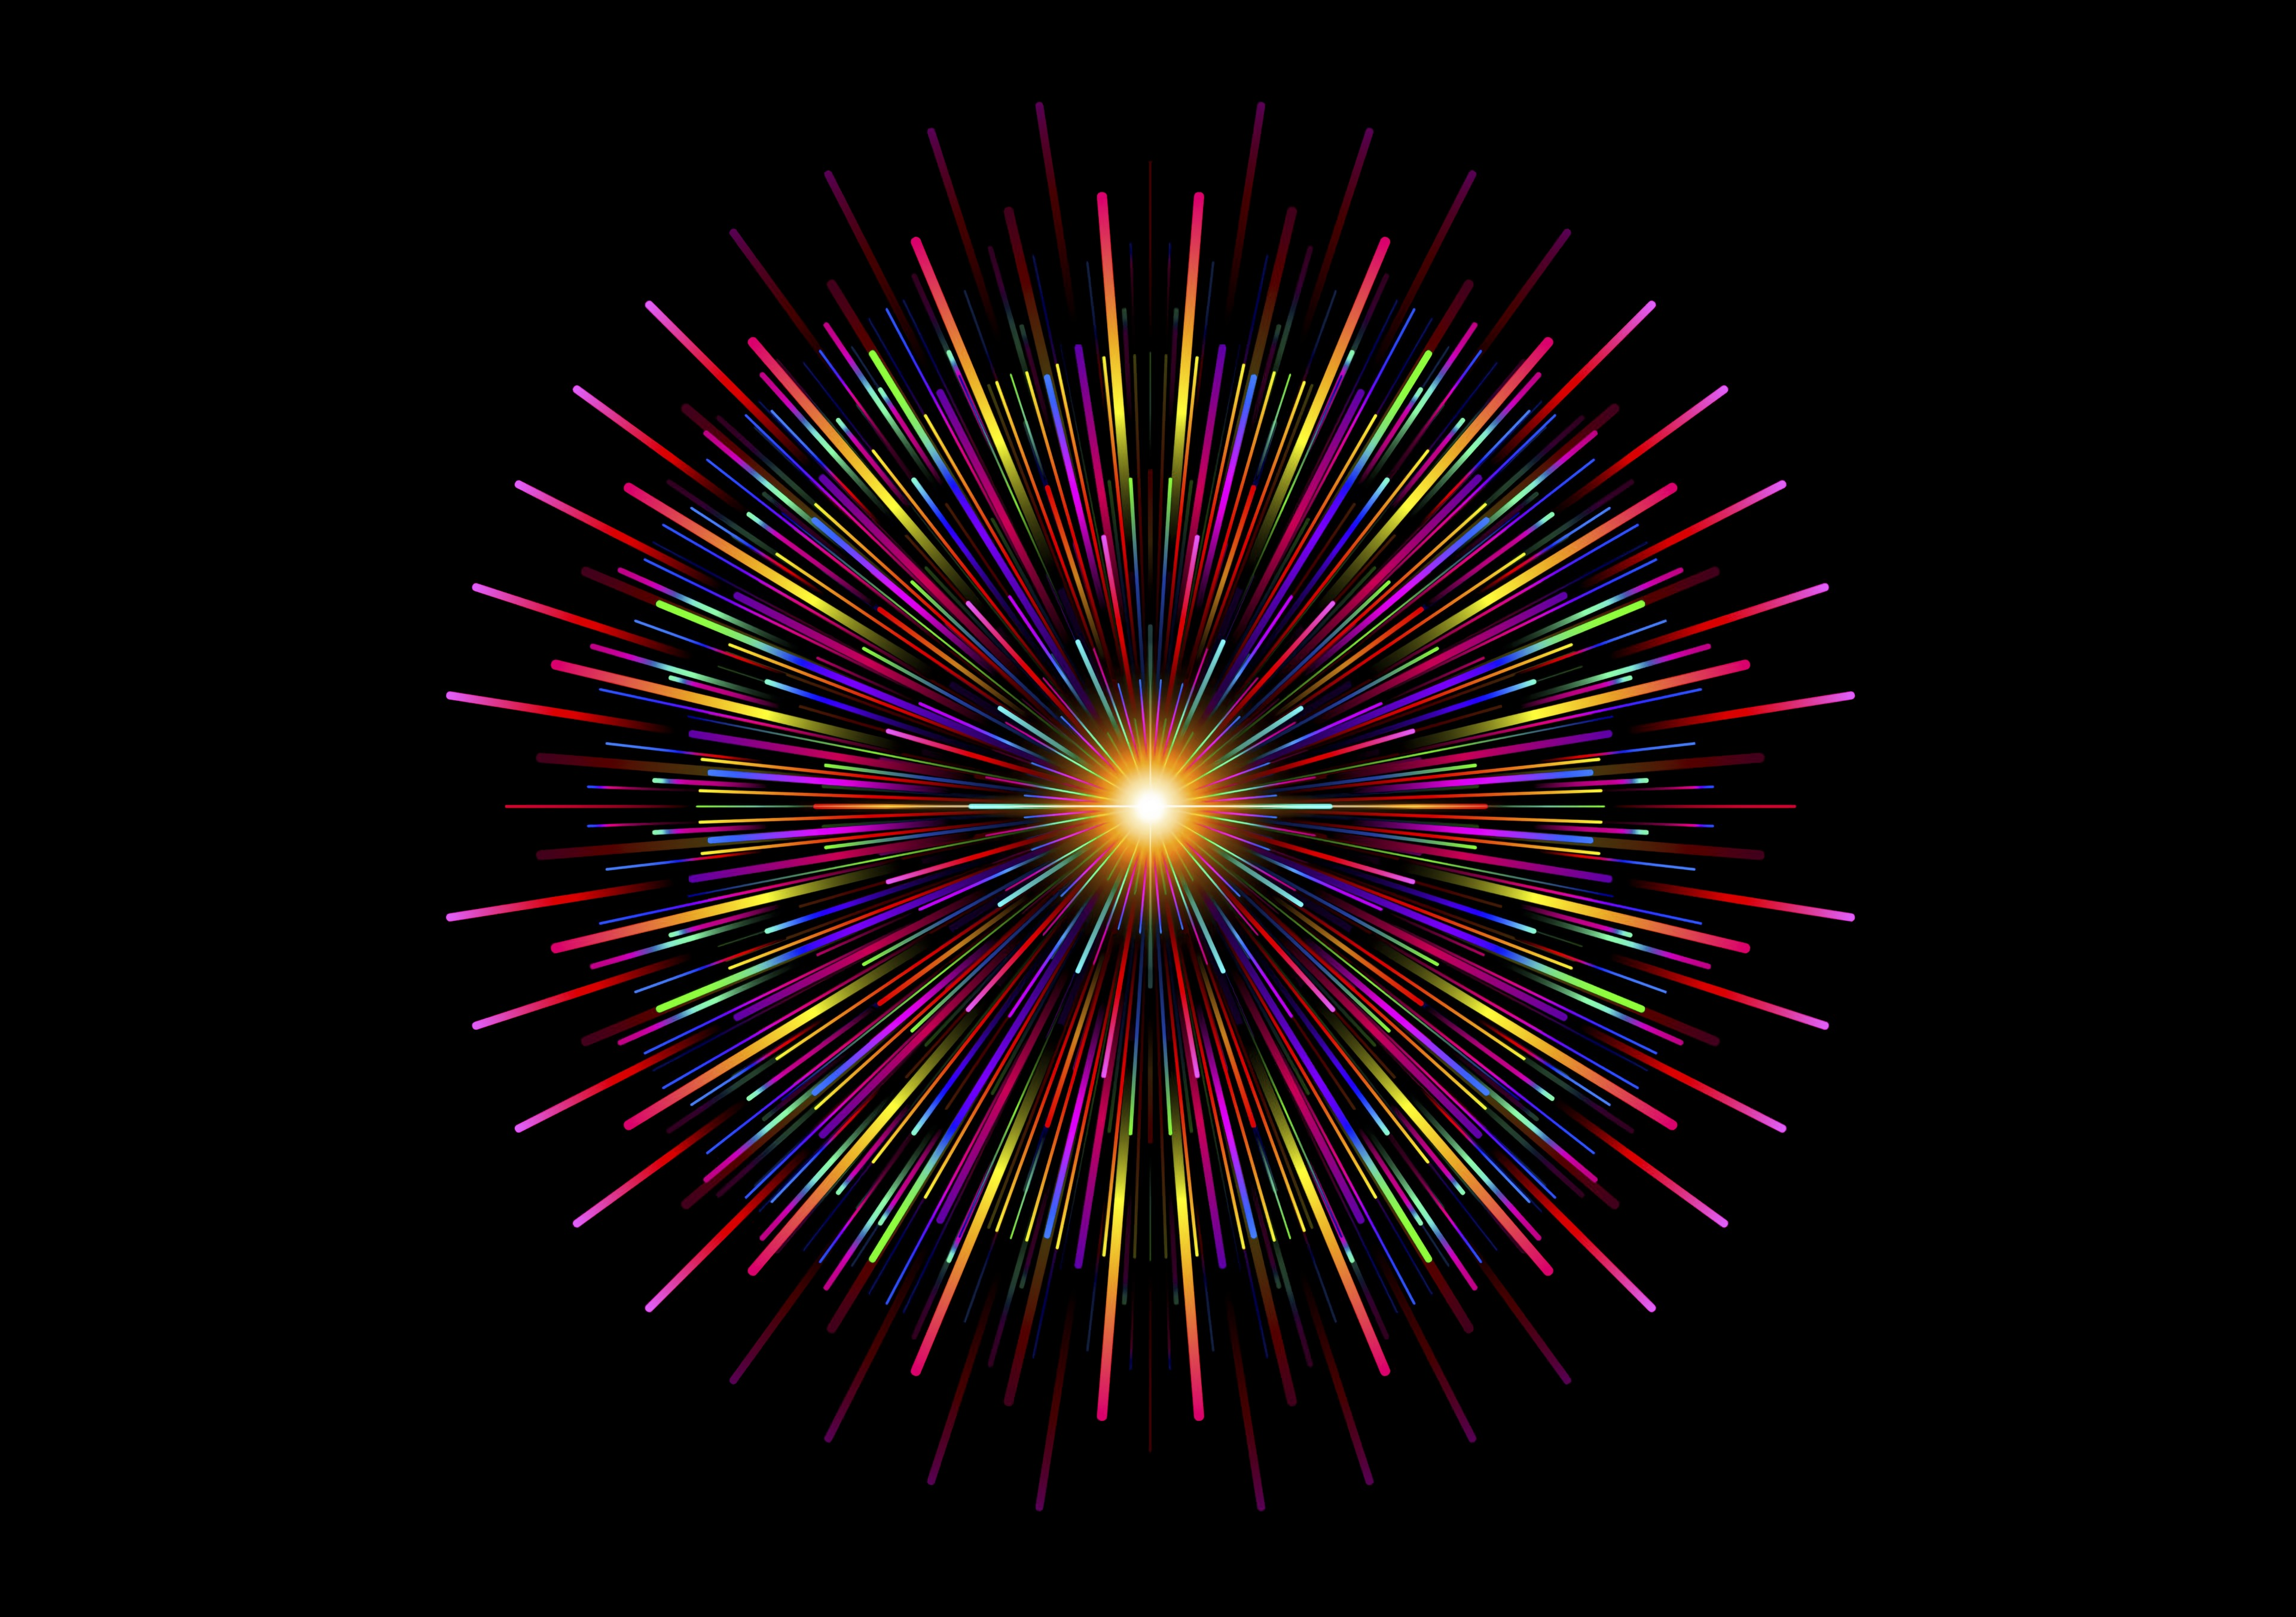 78257 download wallpaper Abstract, Fireworks, Firework, Salute, Beams, Rays, Glow, Multicolored, Motley screensavers and pictures for free